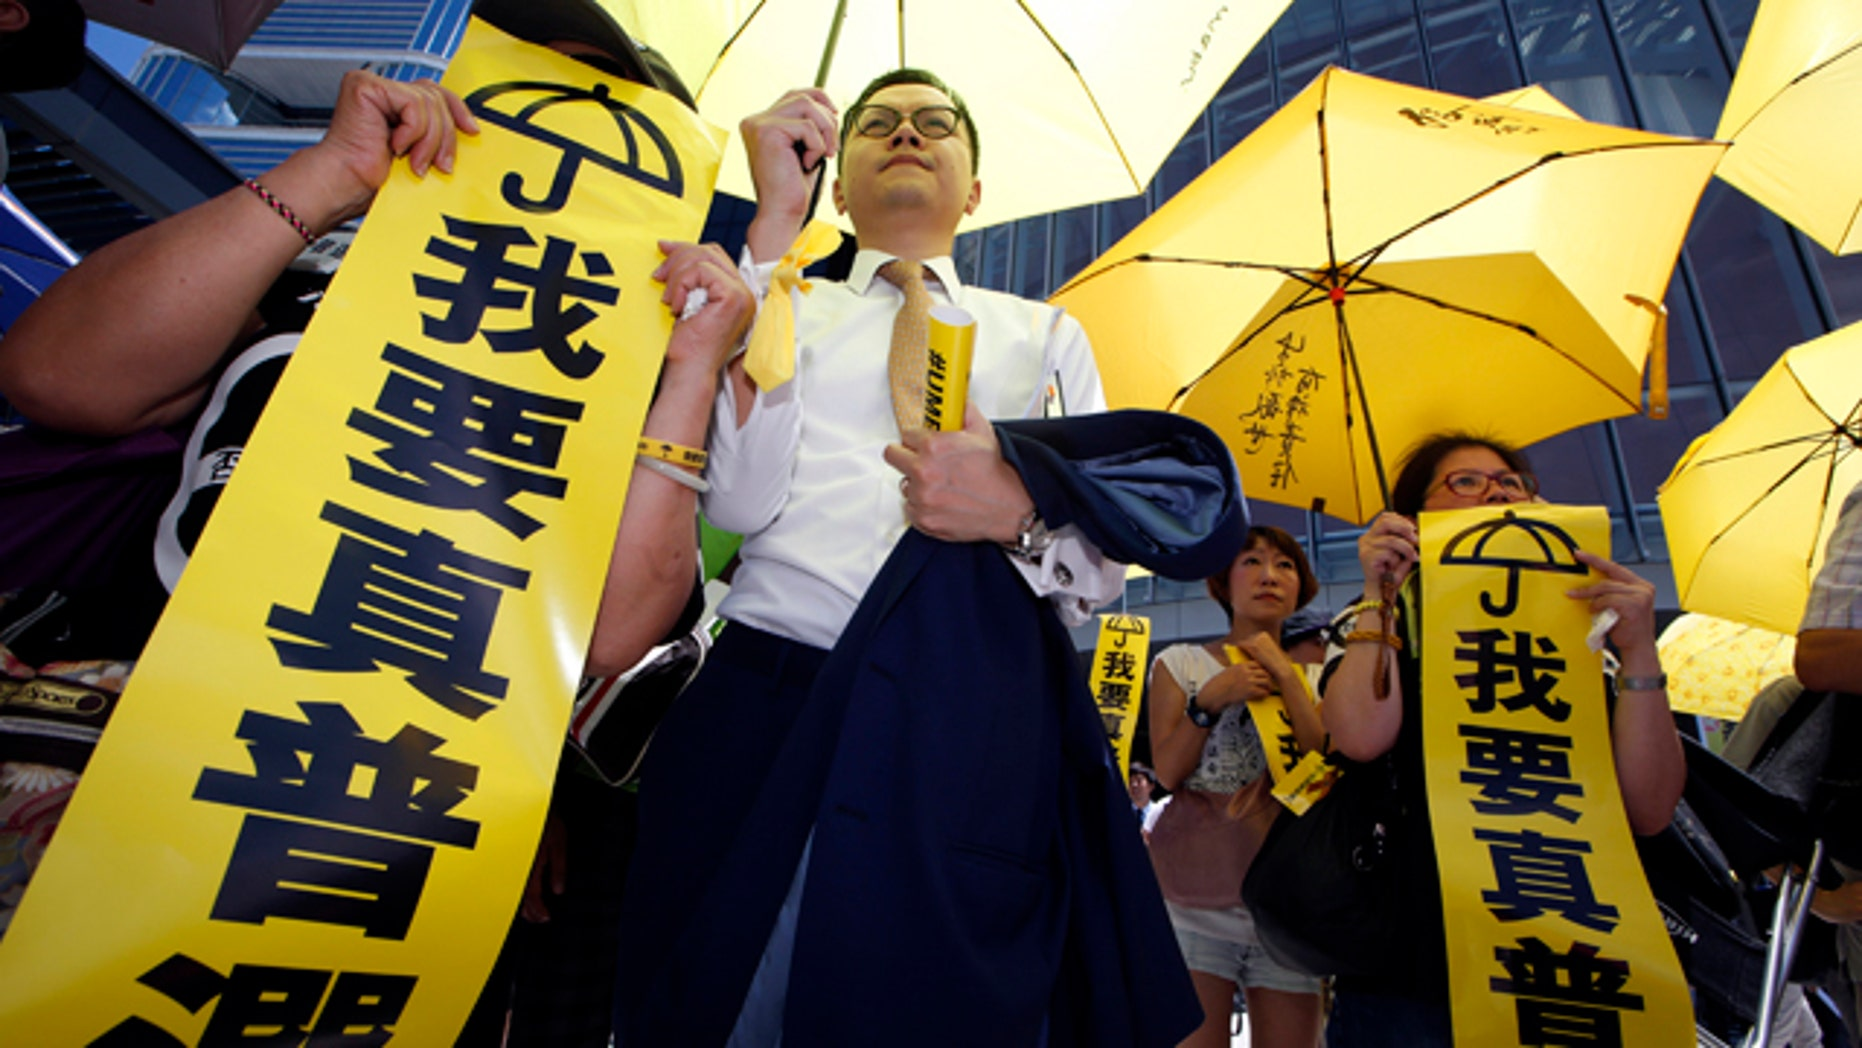 June 18, 2015: Pro-democracy protesters display placards reading I want genuine universal suffrage outside the Legislative Council in Hong Kong. The Hong Kong government's controversial Beijing-backed election reforms were defeated Thursday by pro-democracy lawmakers. (AP Photo/Kin Cheung)